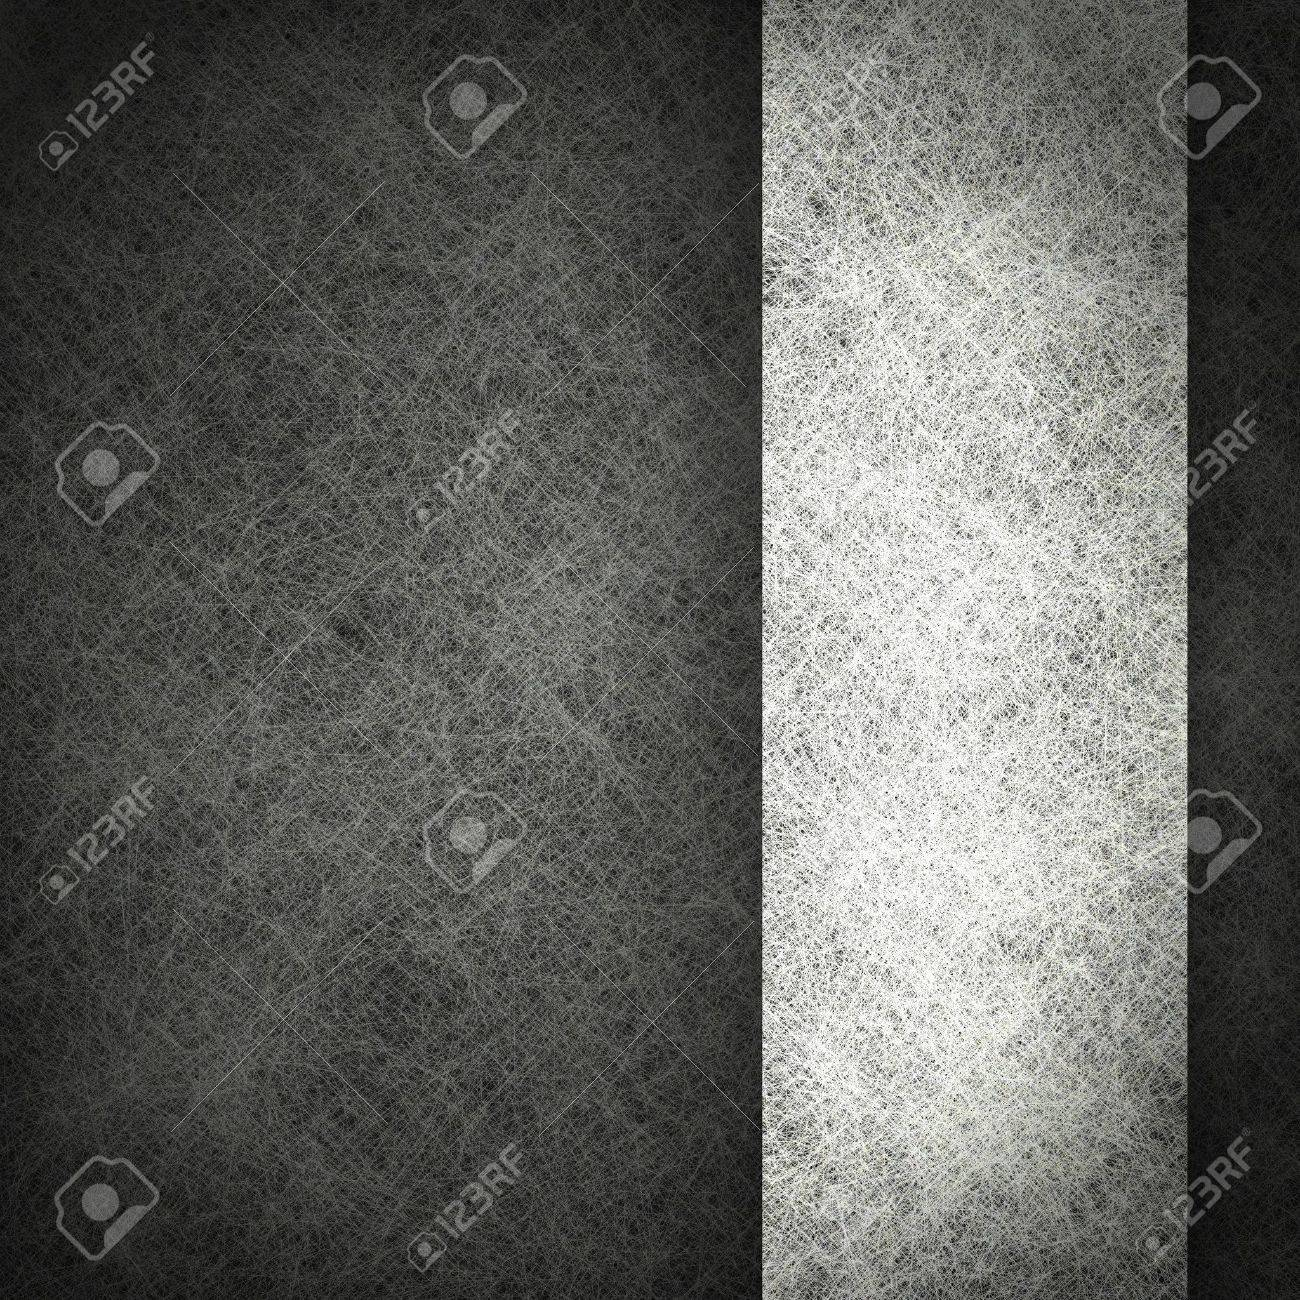 black background with grunge texture and vintage parchment paper illustration on white ribbon with copyspace; monochrome background Stock Photo - 12624096